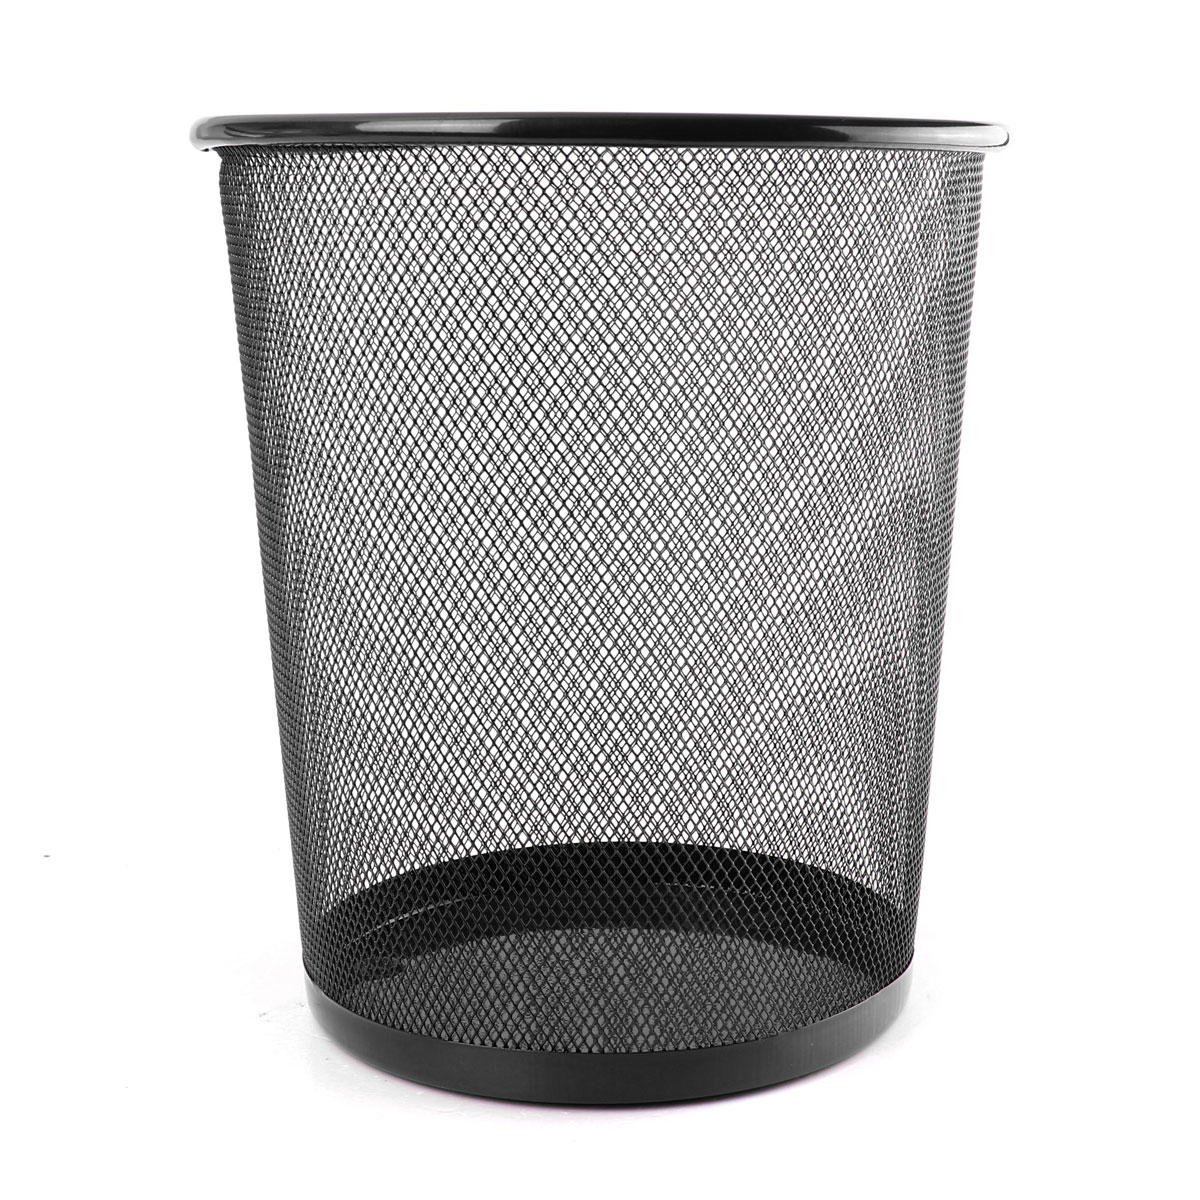 Office Can Metal Mesh Waste Bin Wastebasket Rubbish Paper